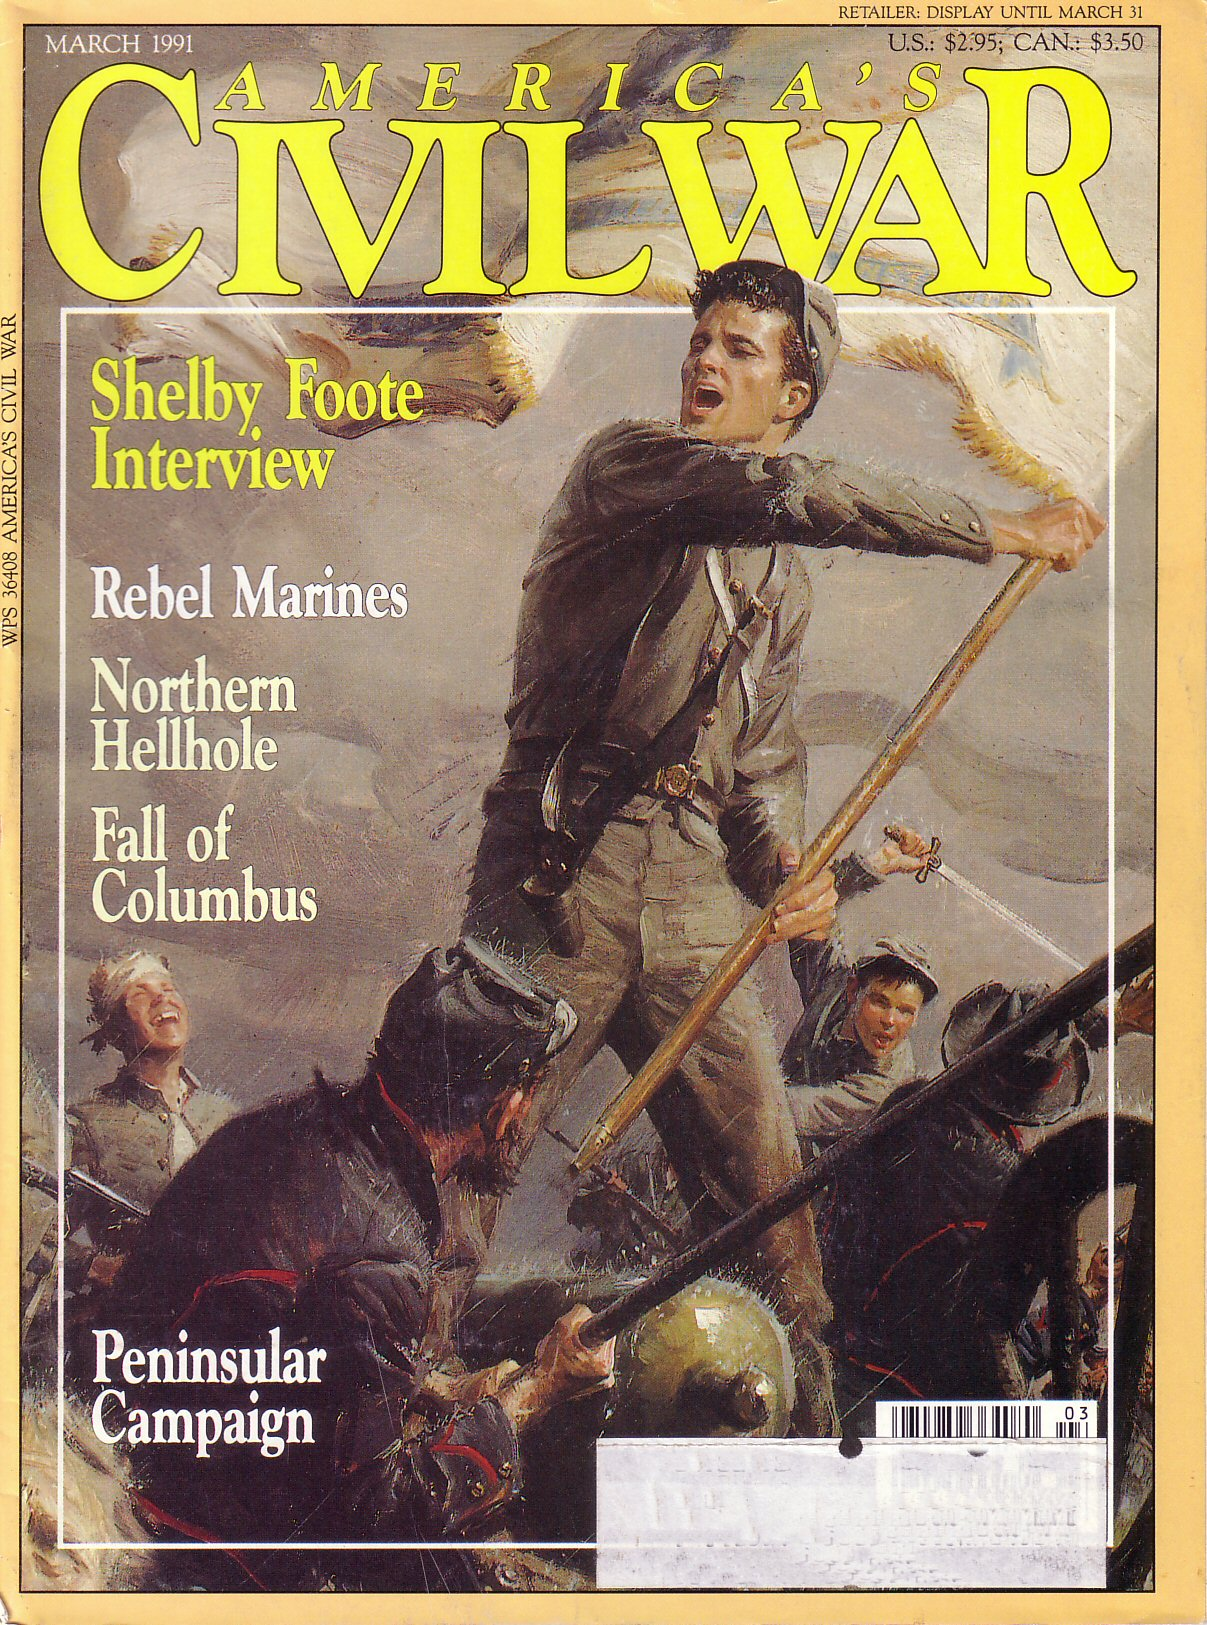 Americas Civil War, Volume 3, Number 6 (March 1991)